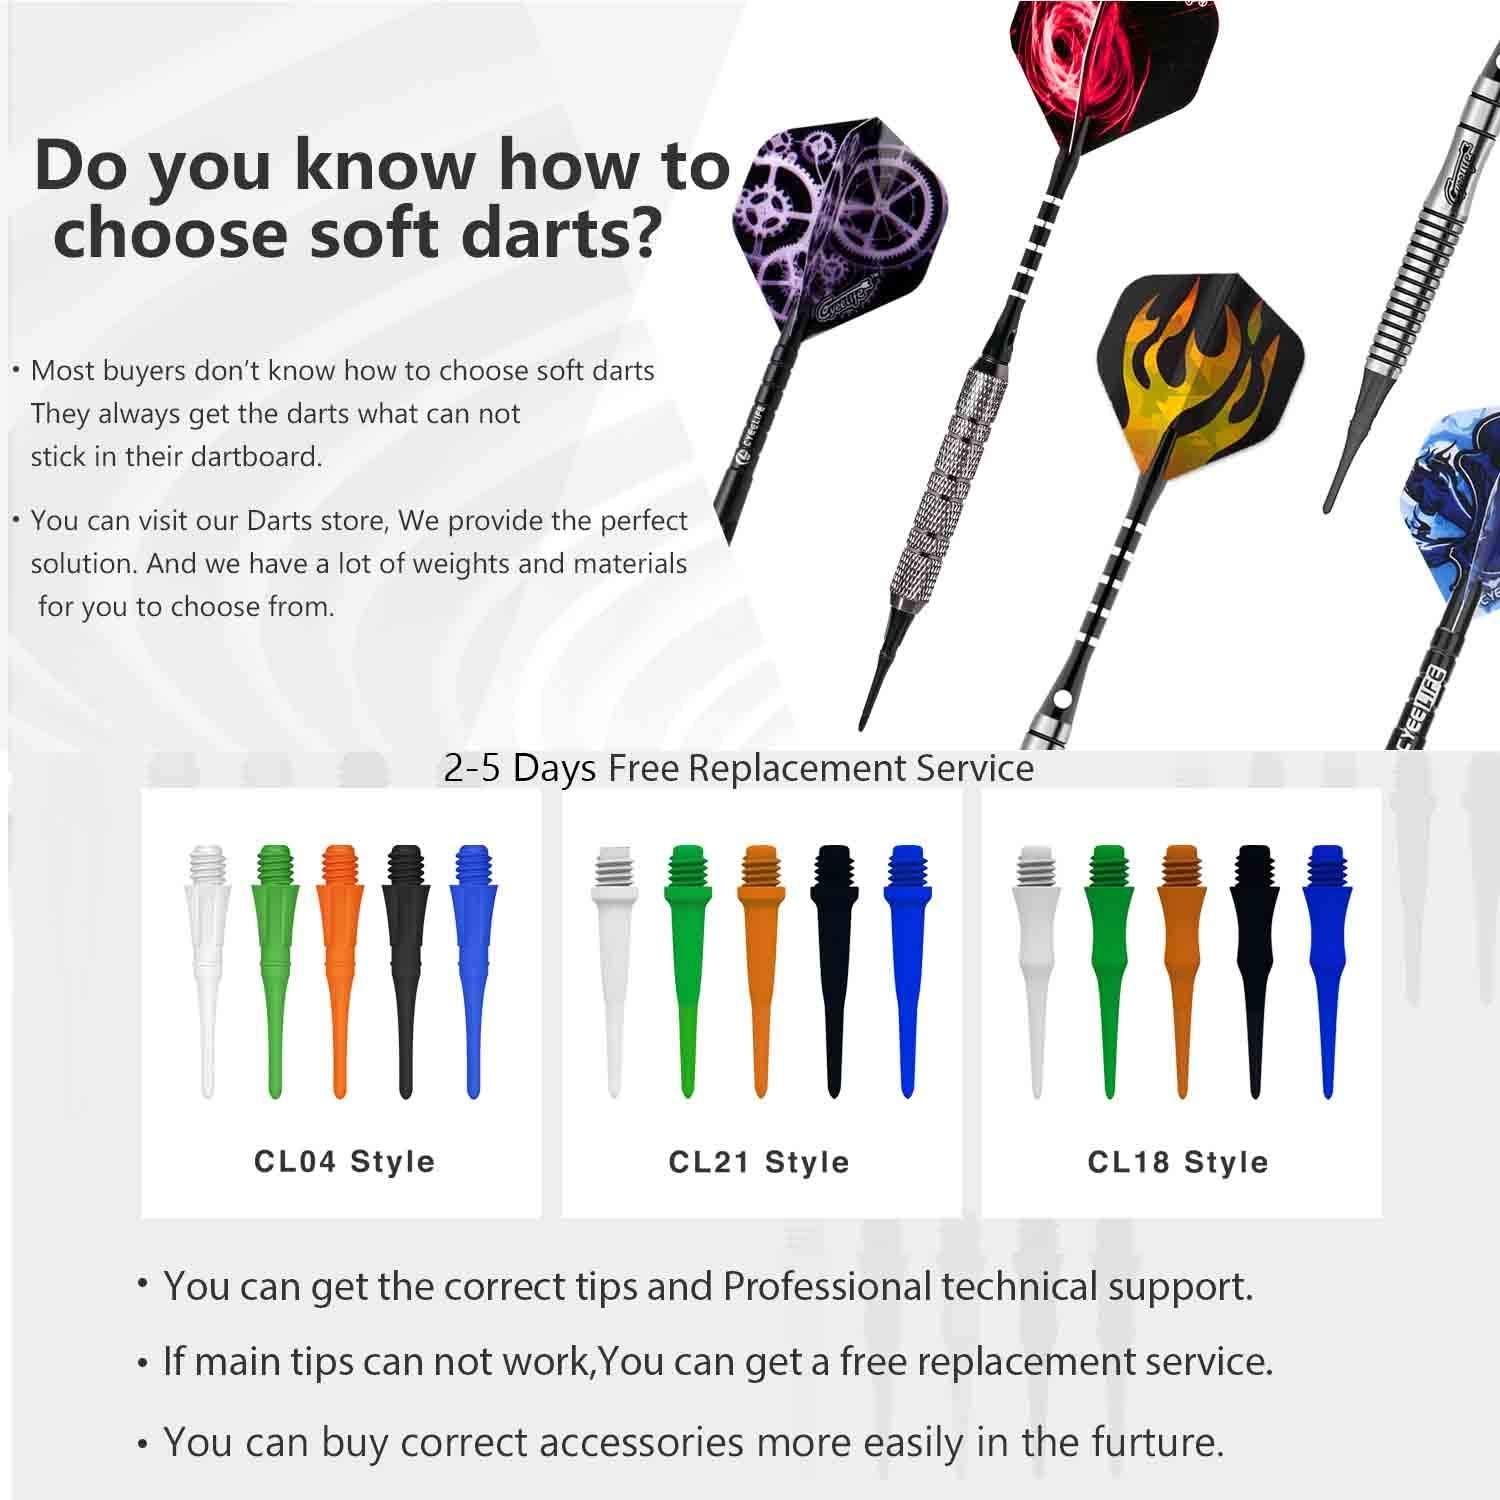 Betting pro darts for sale we love betting uk